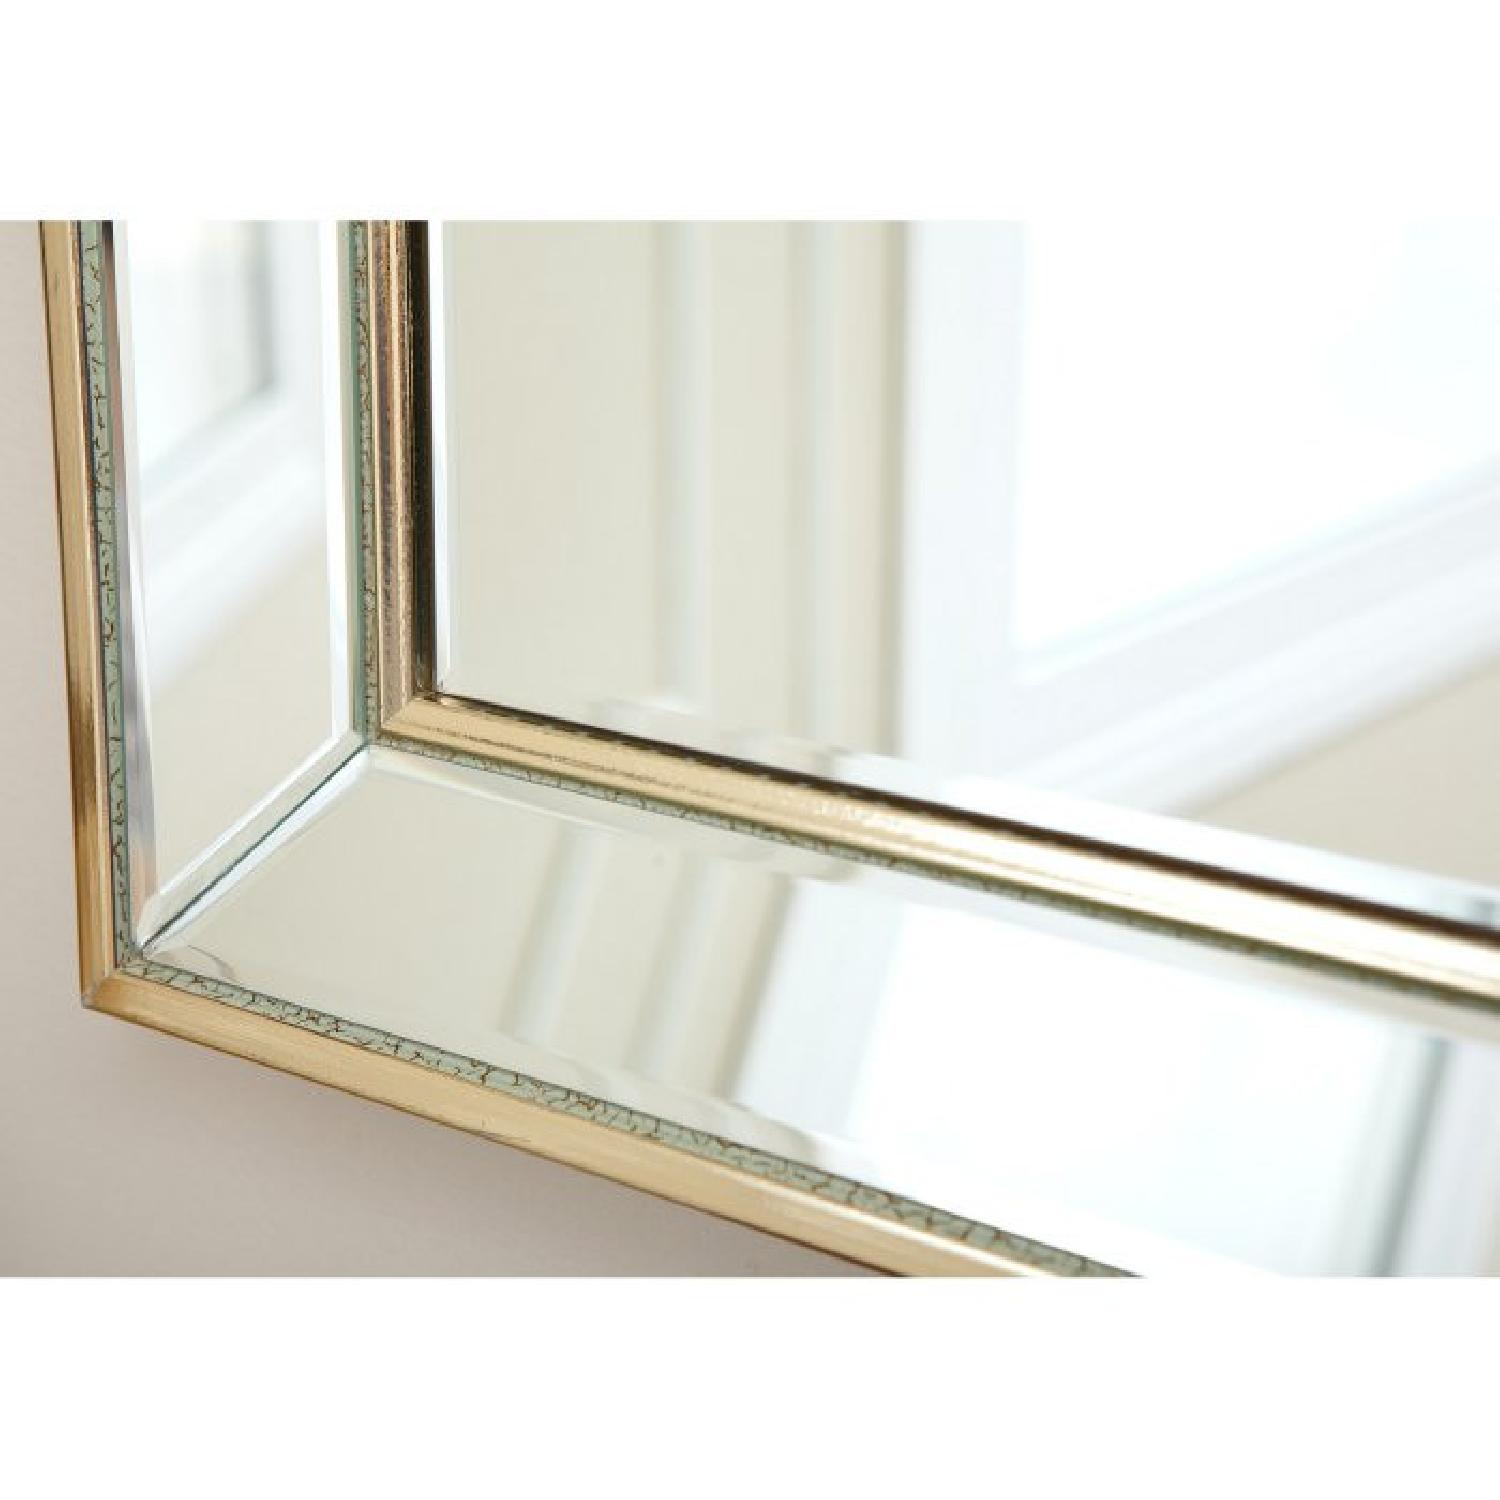 Abbyson Living Rectangular Wall Mirror - image-1